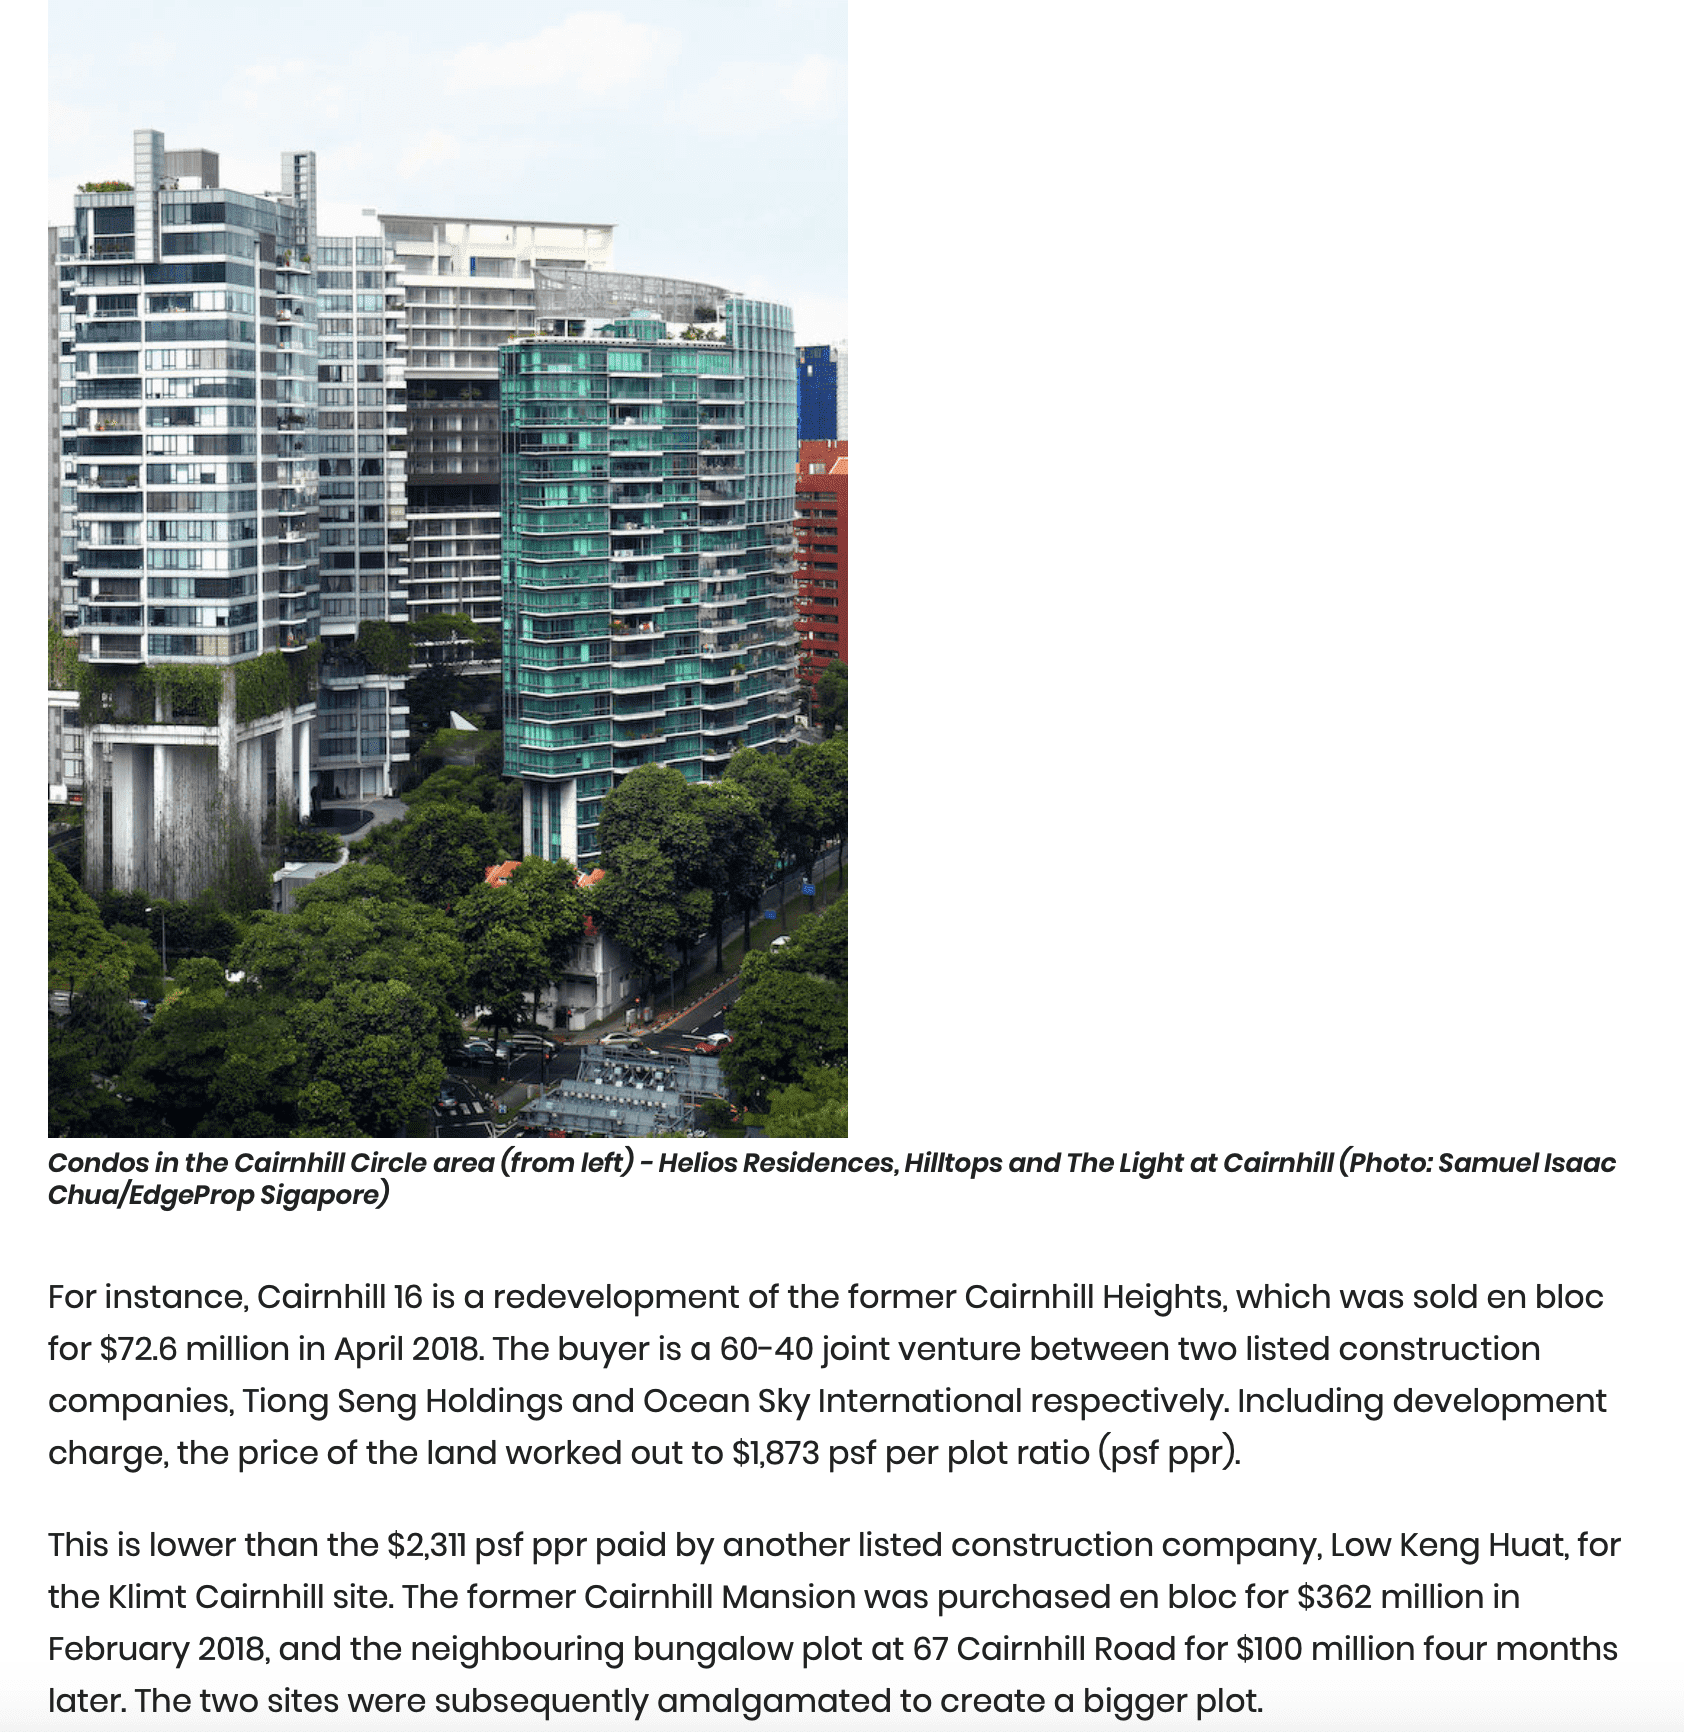 covid-19-may-amplify-attractiveness-singapore-real estate-12